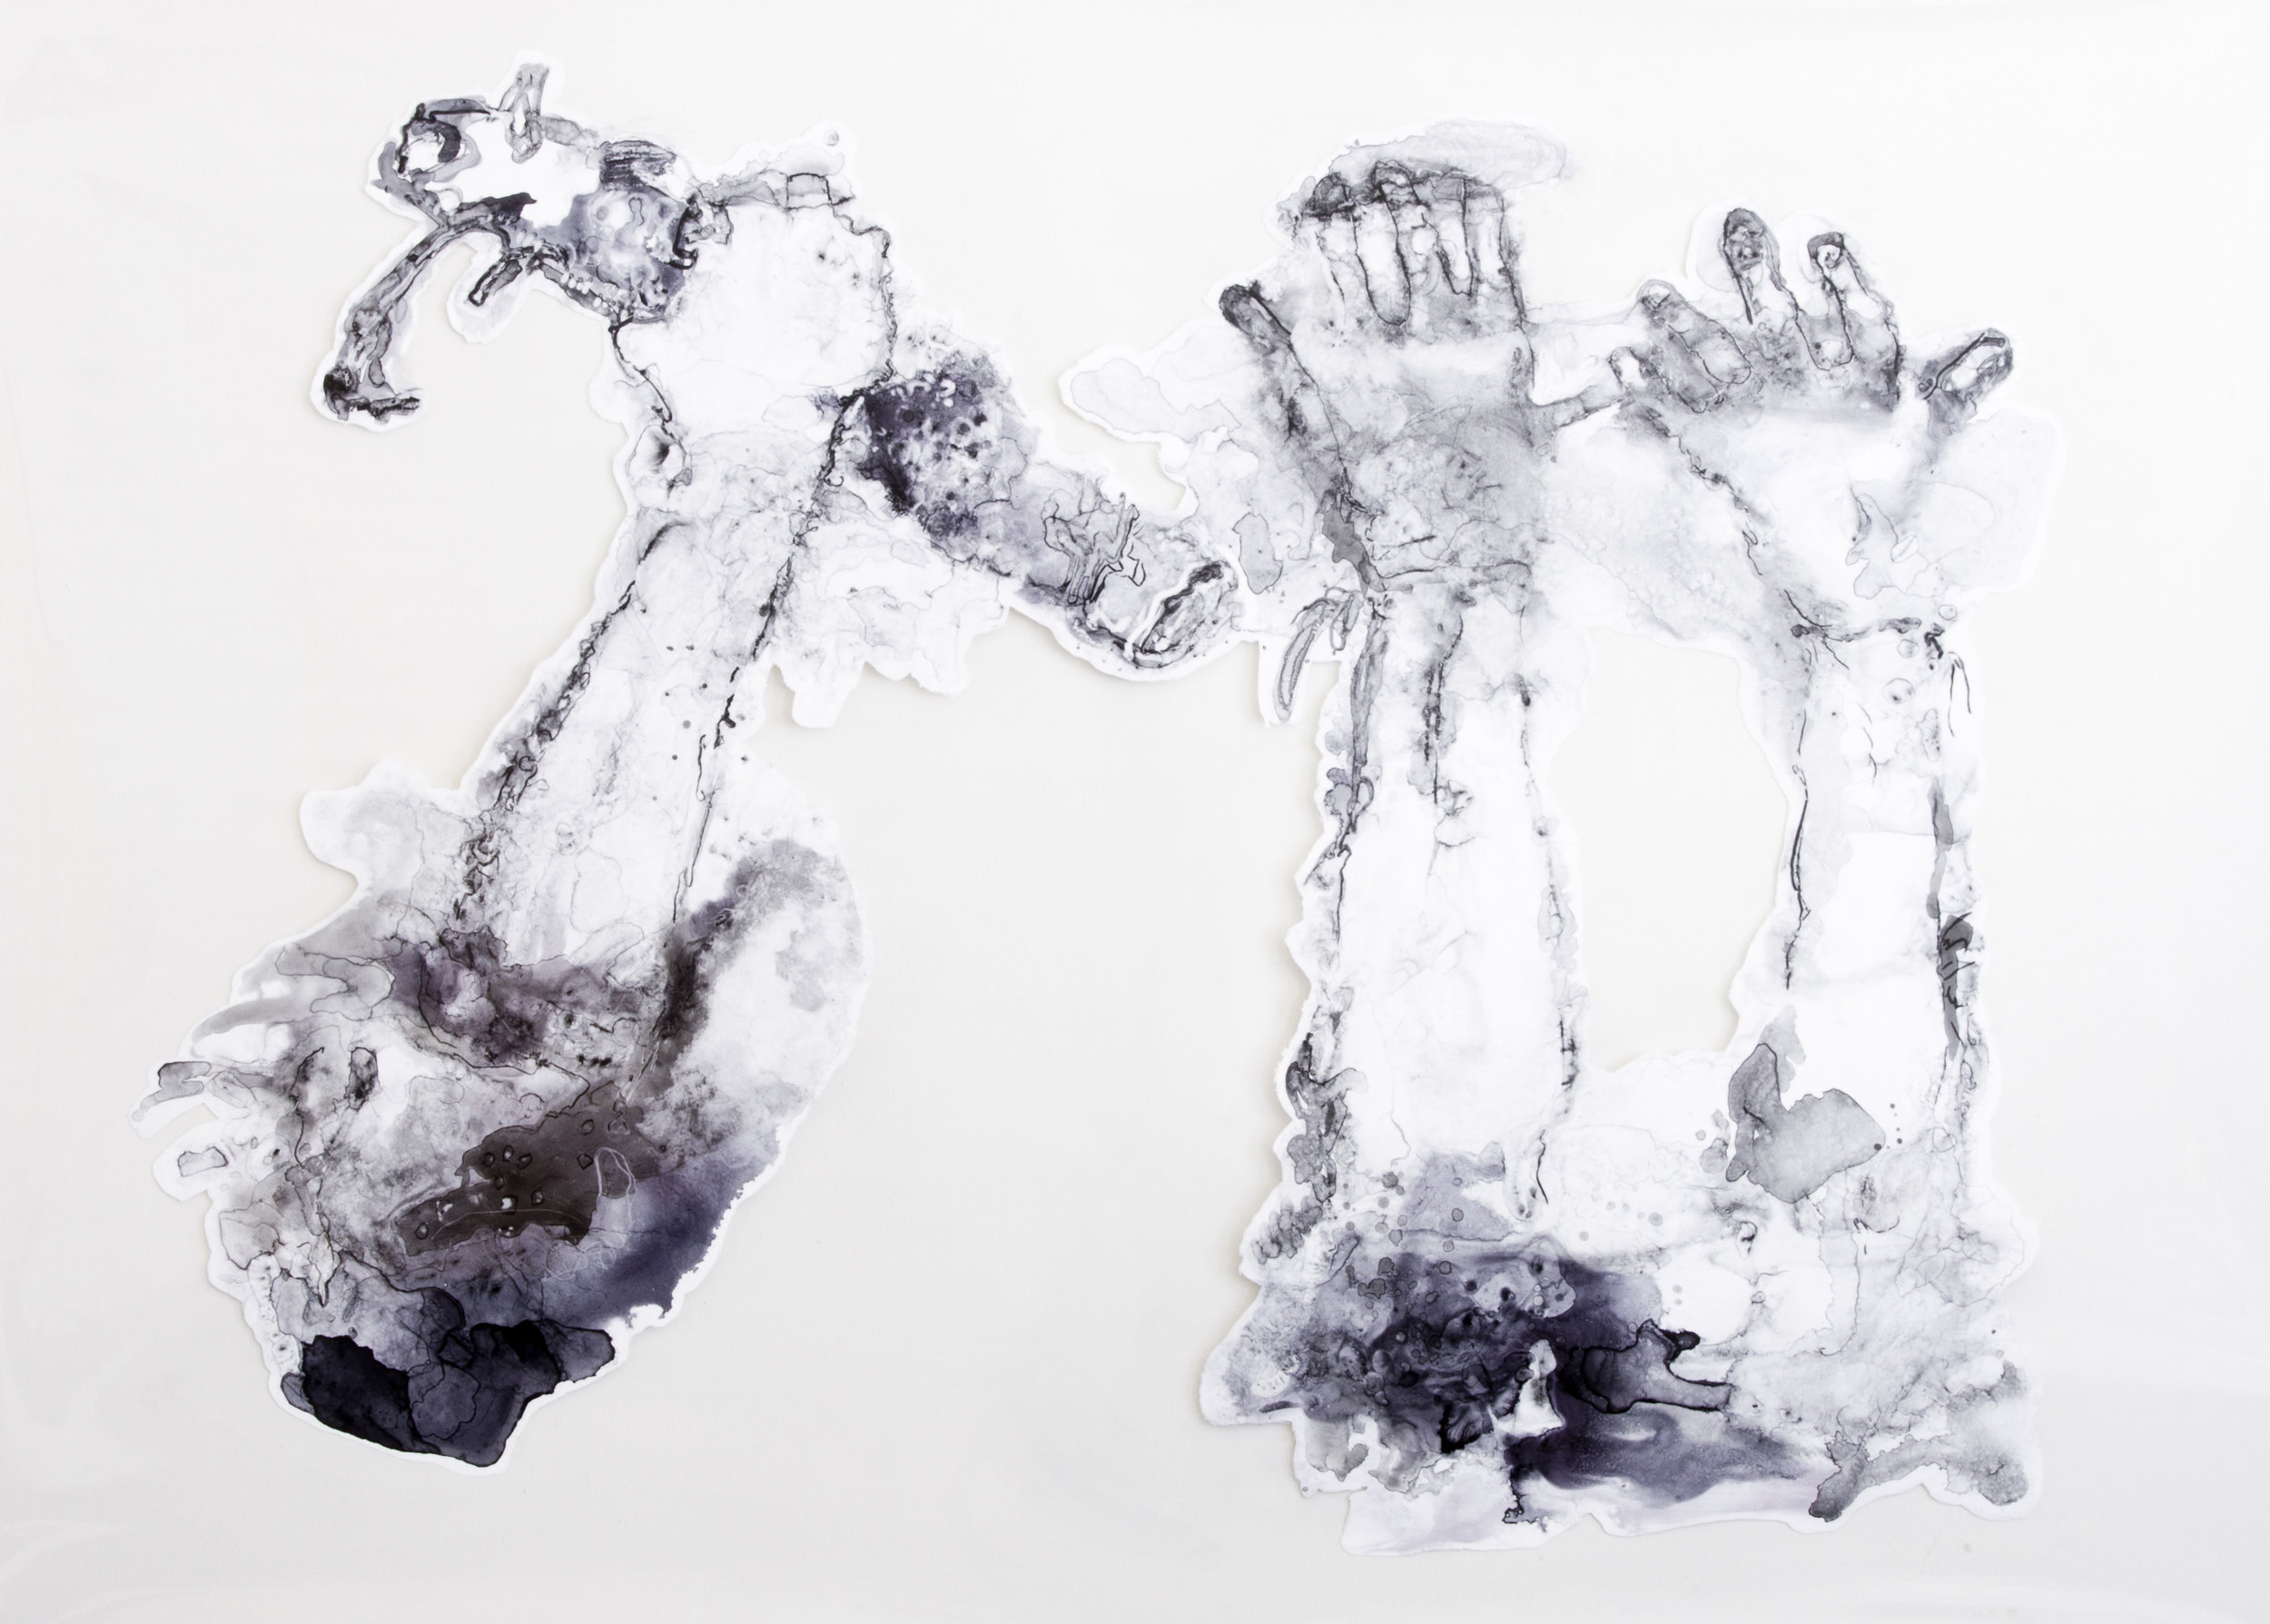 Spirit Stick, 2016, watercolor and acrylic on transparent mylar, 50x35 inches